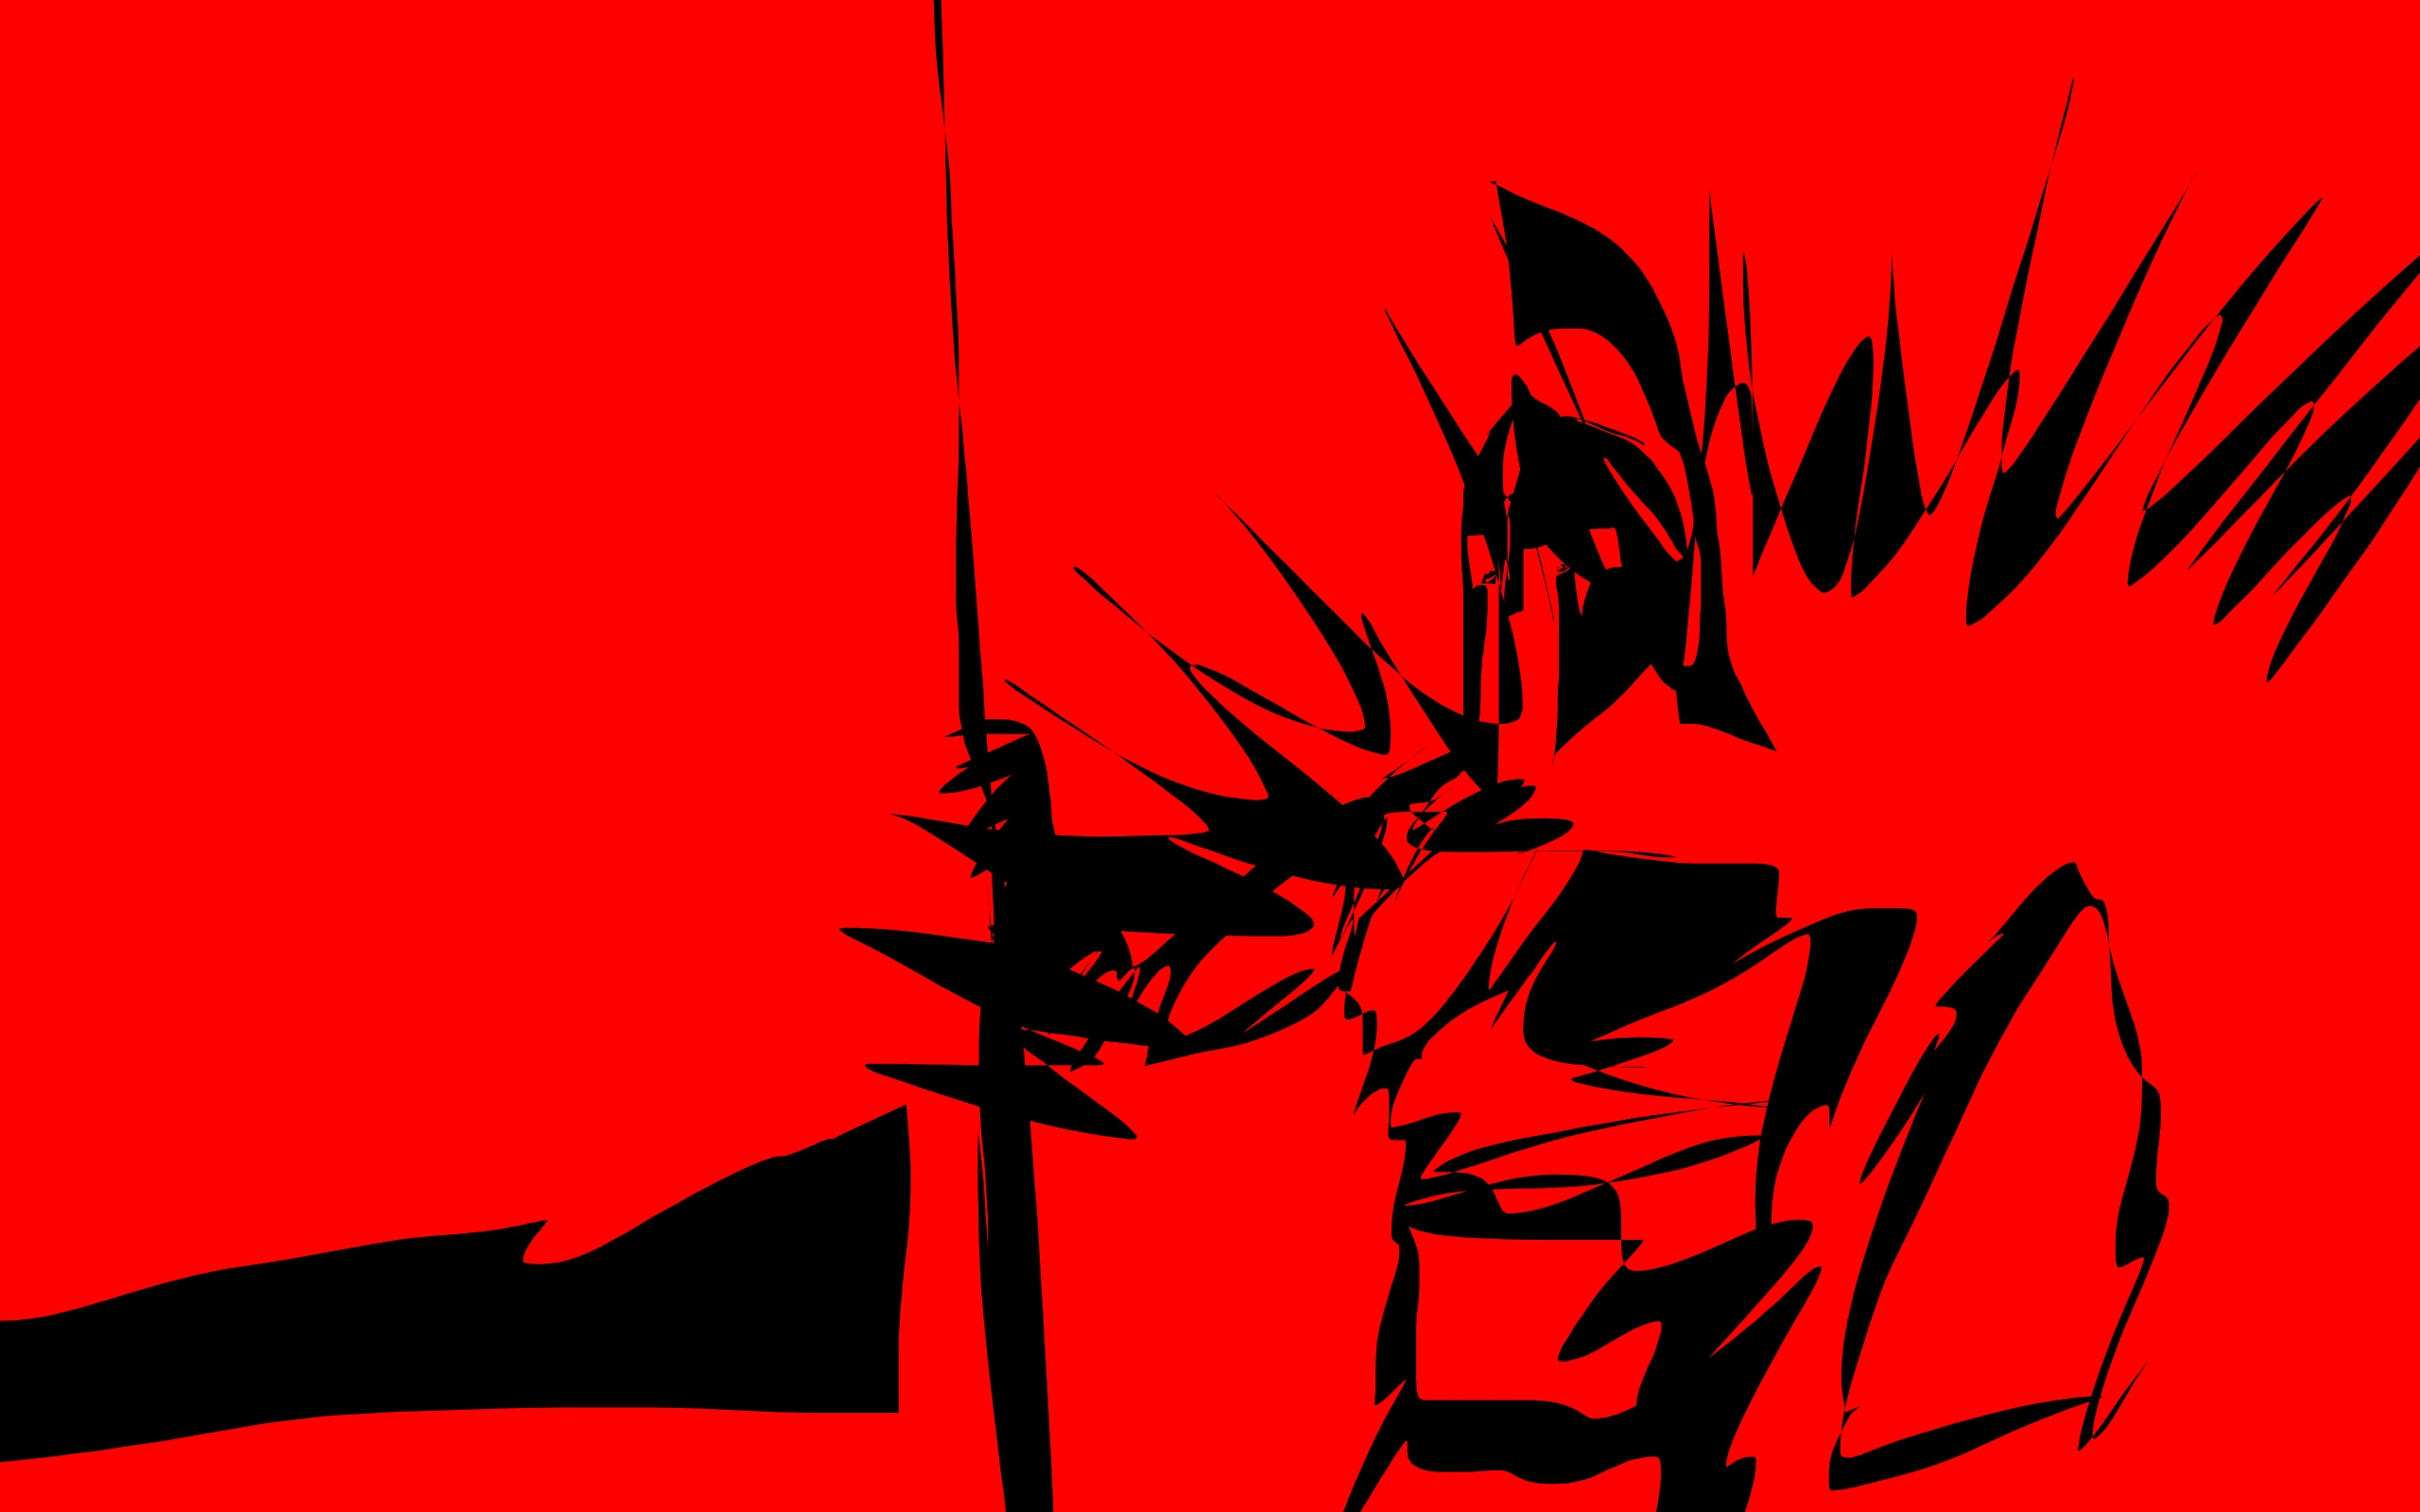 300 Sparta abstract